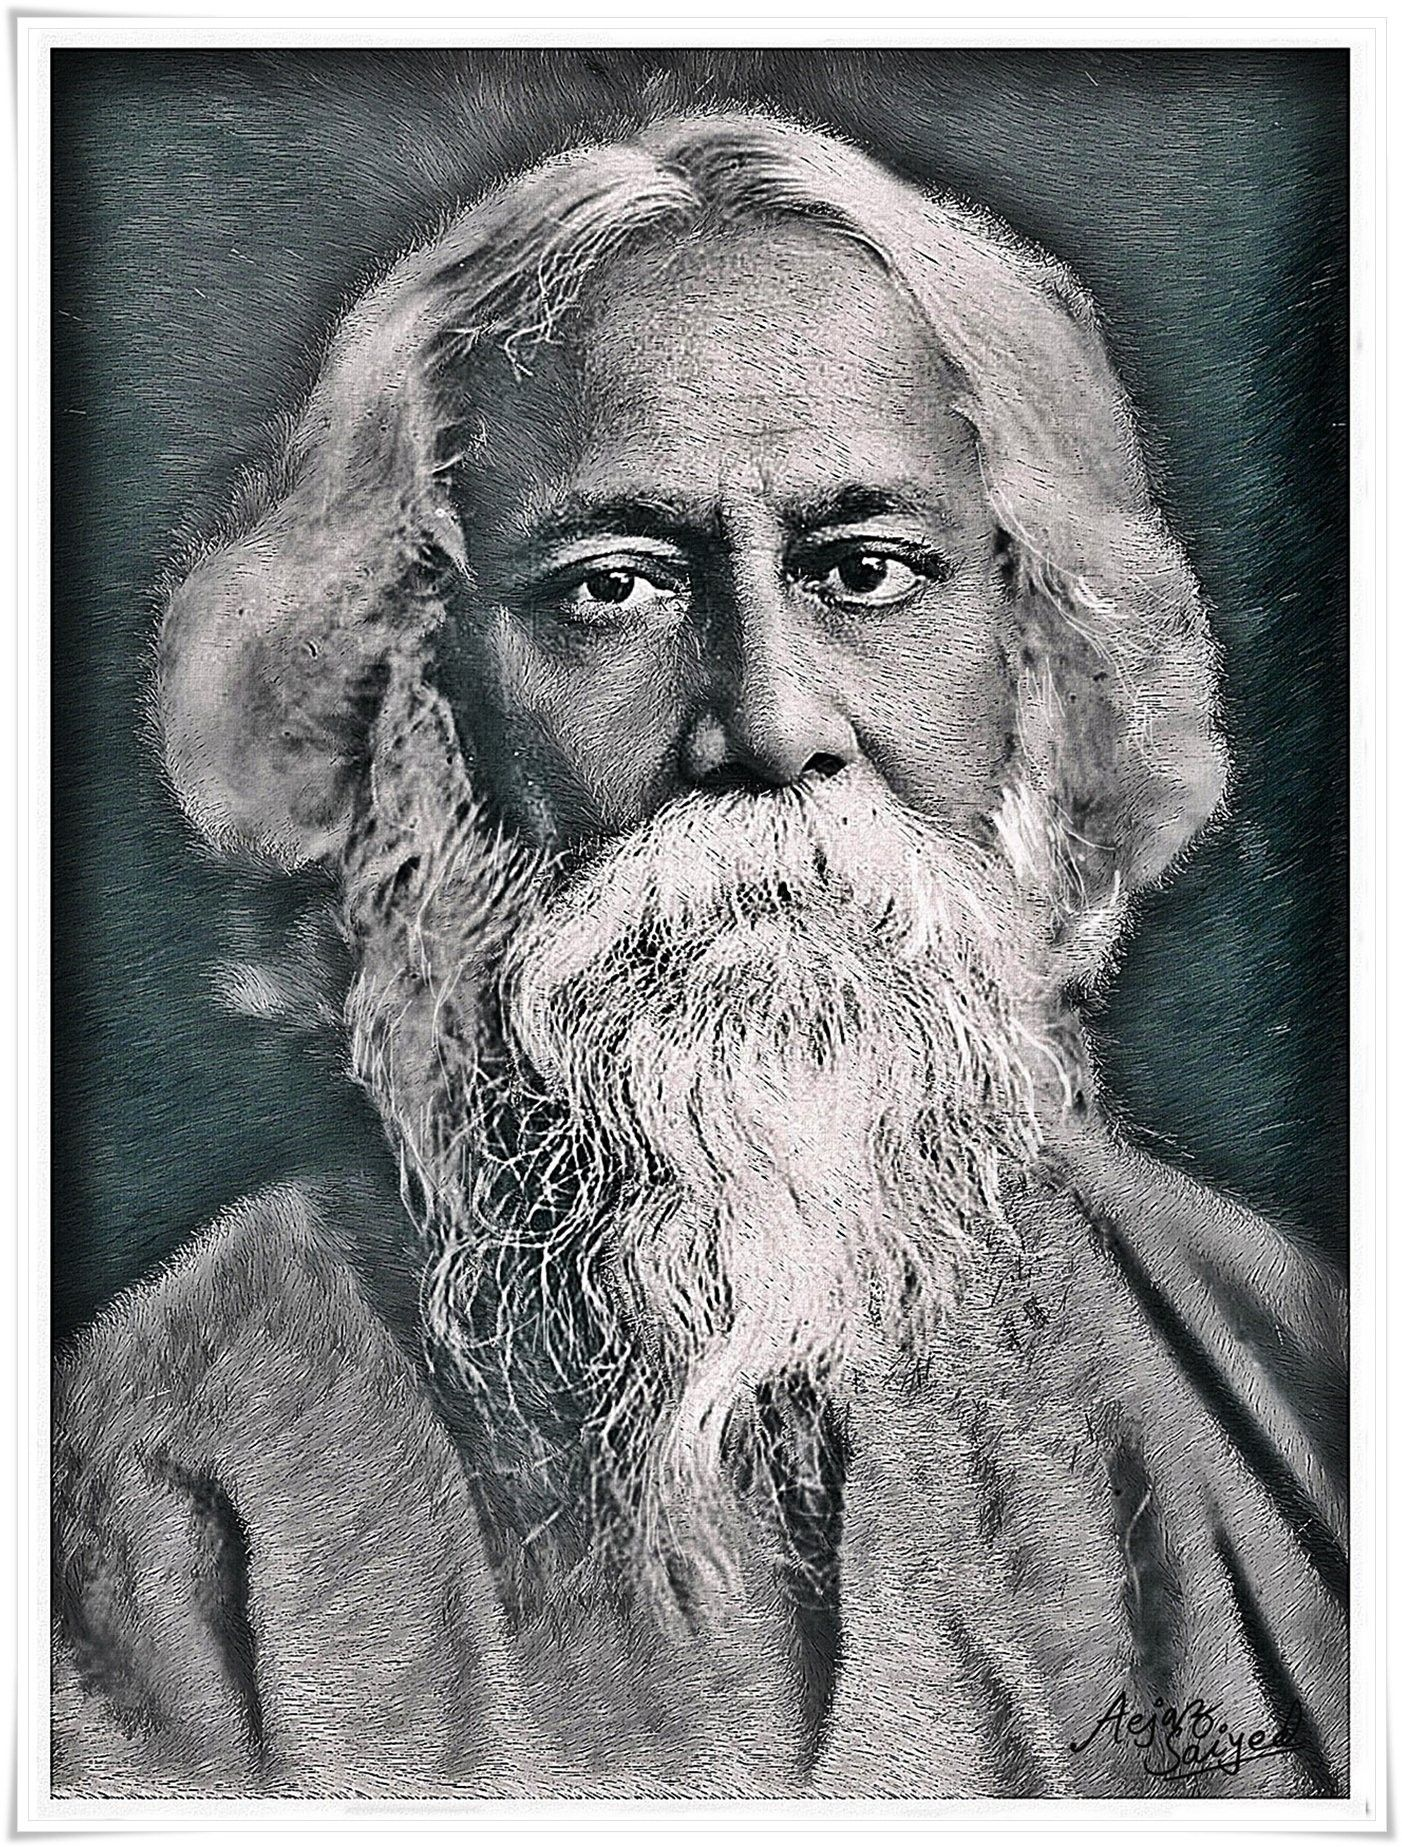 Rabindranath tagore rabindranath tagore image search pencil drawings contemporary art sketches